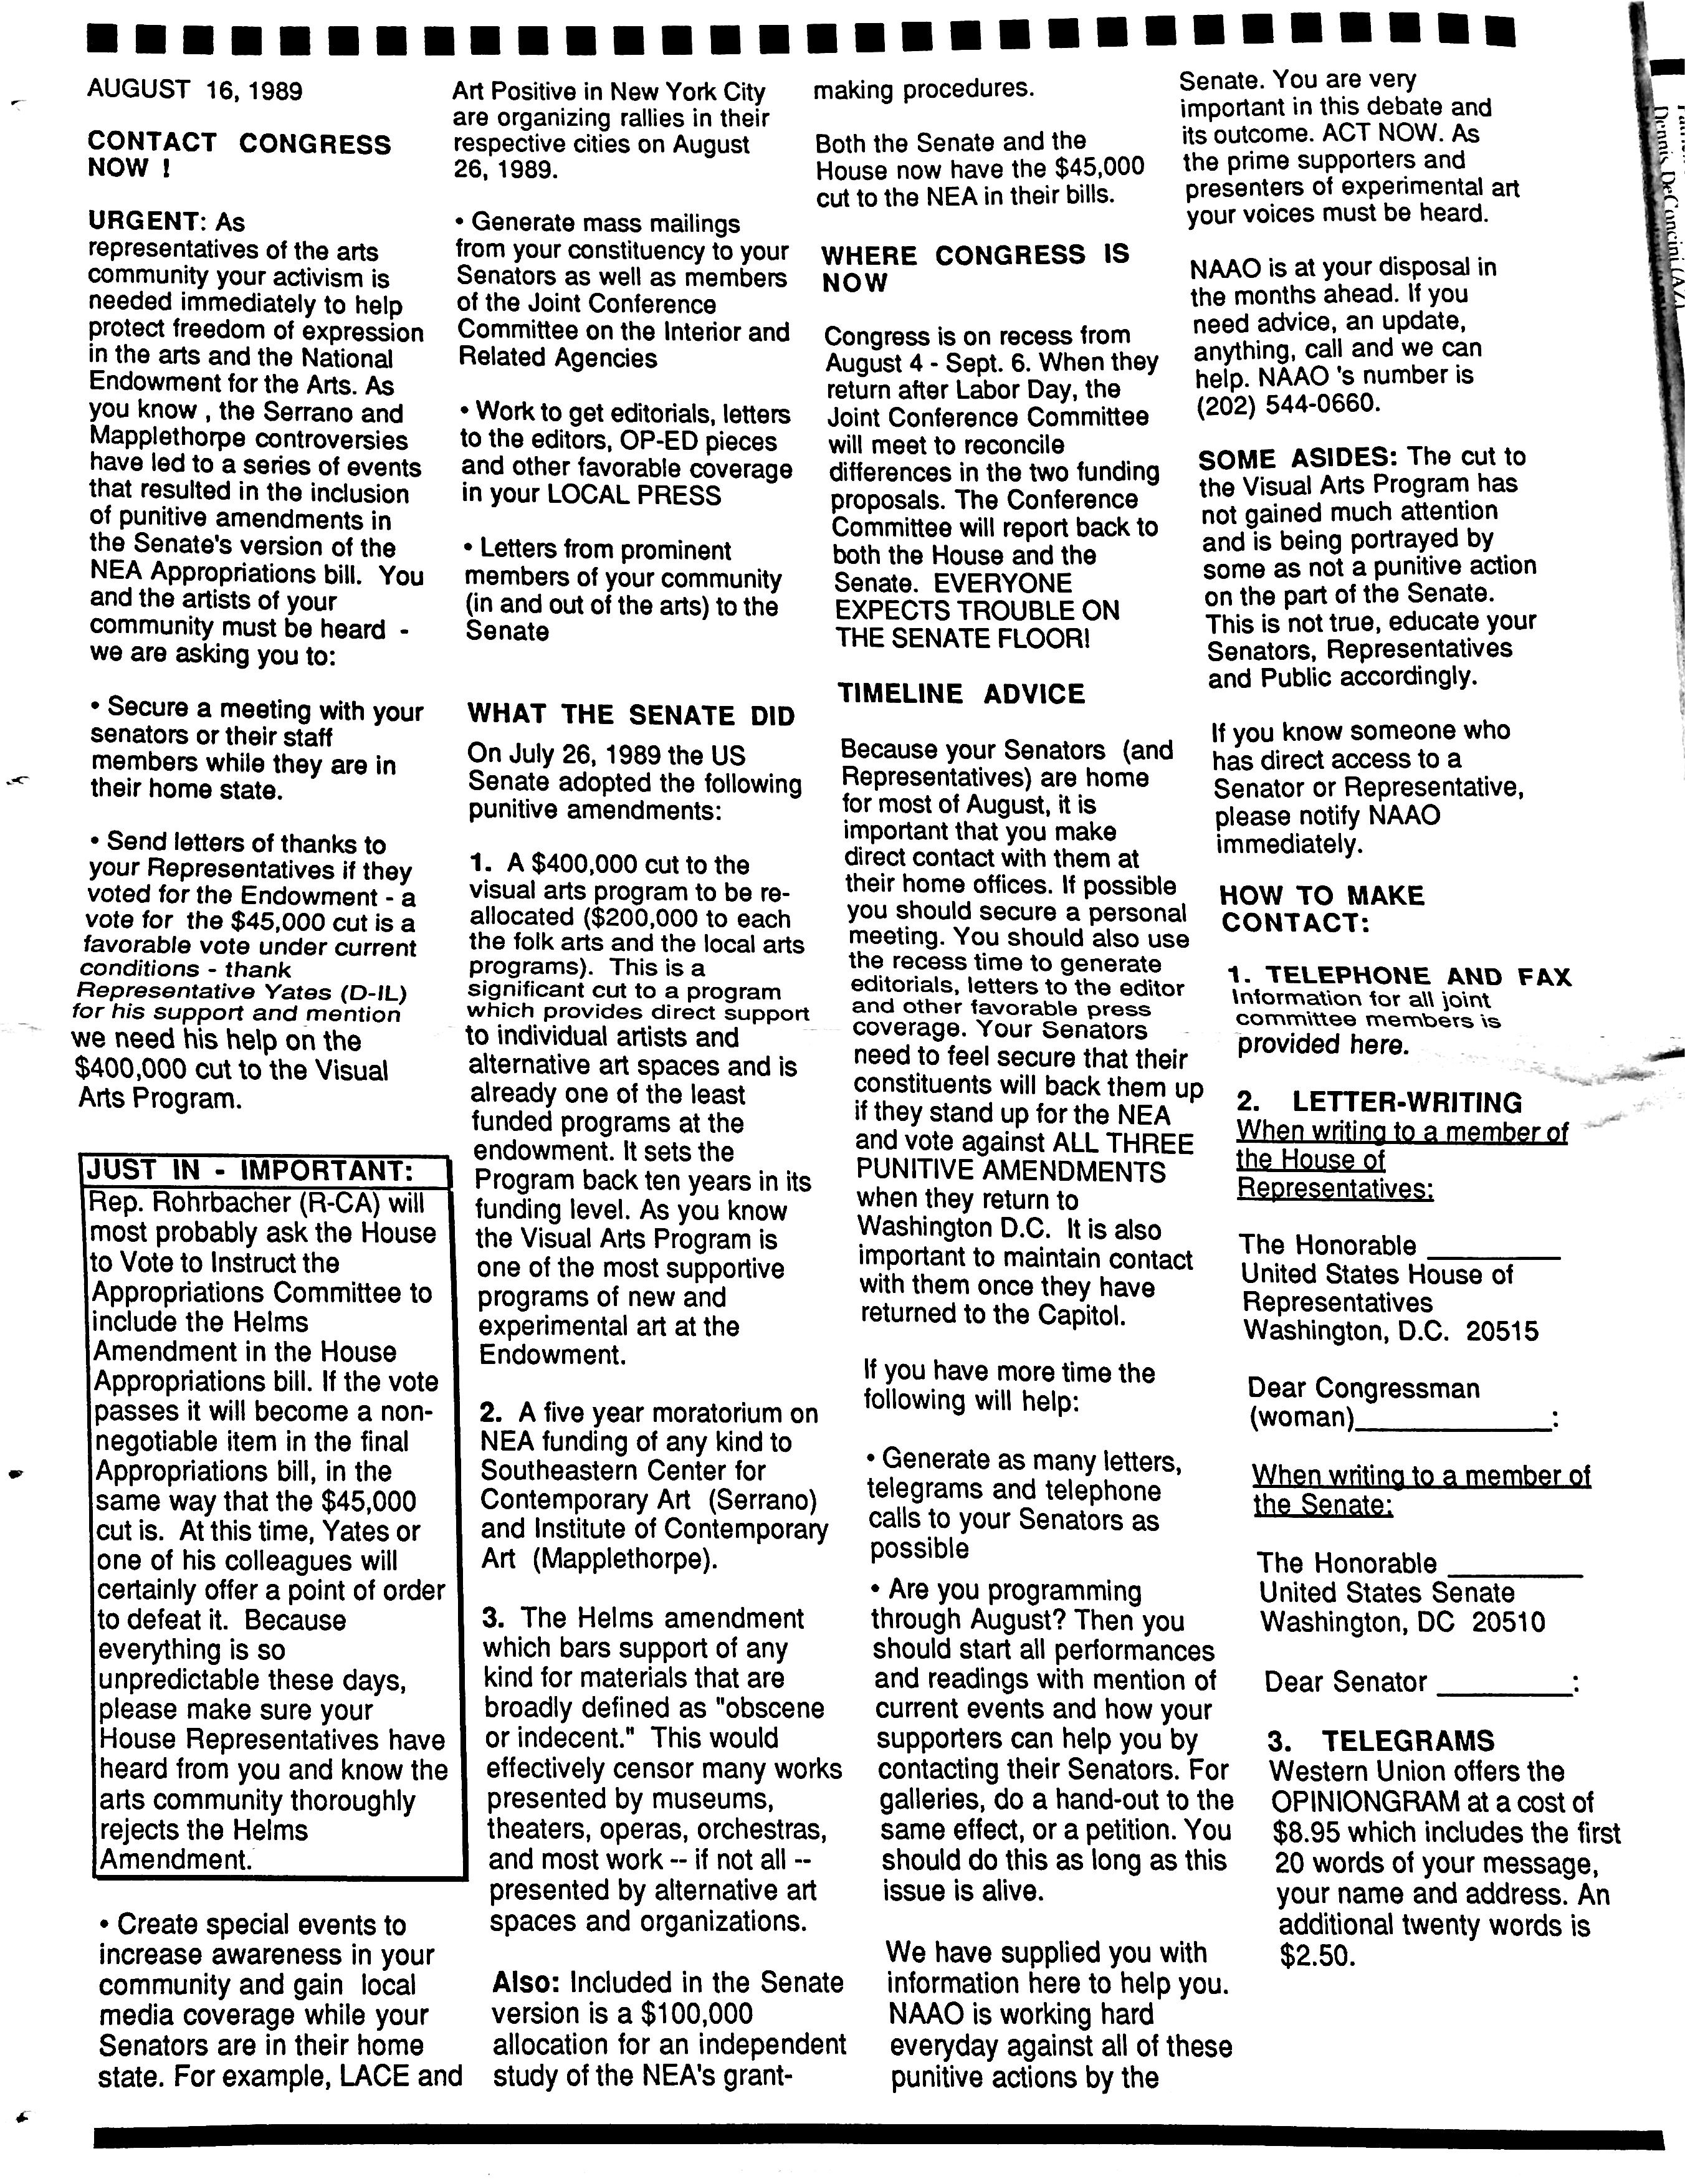 August 16, 1989 Page 2.jpg